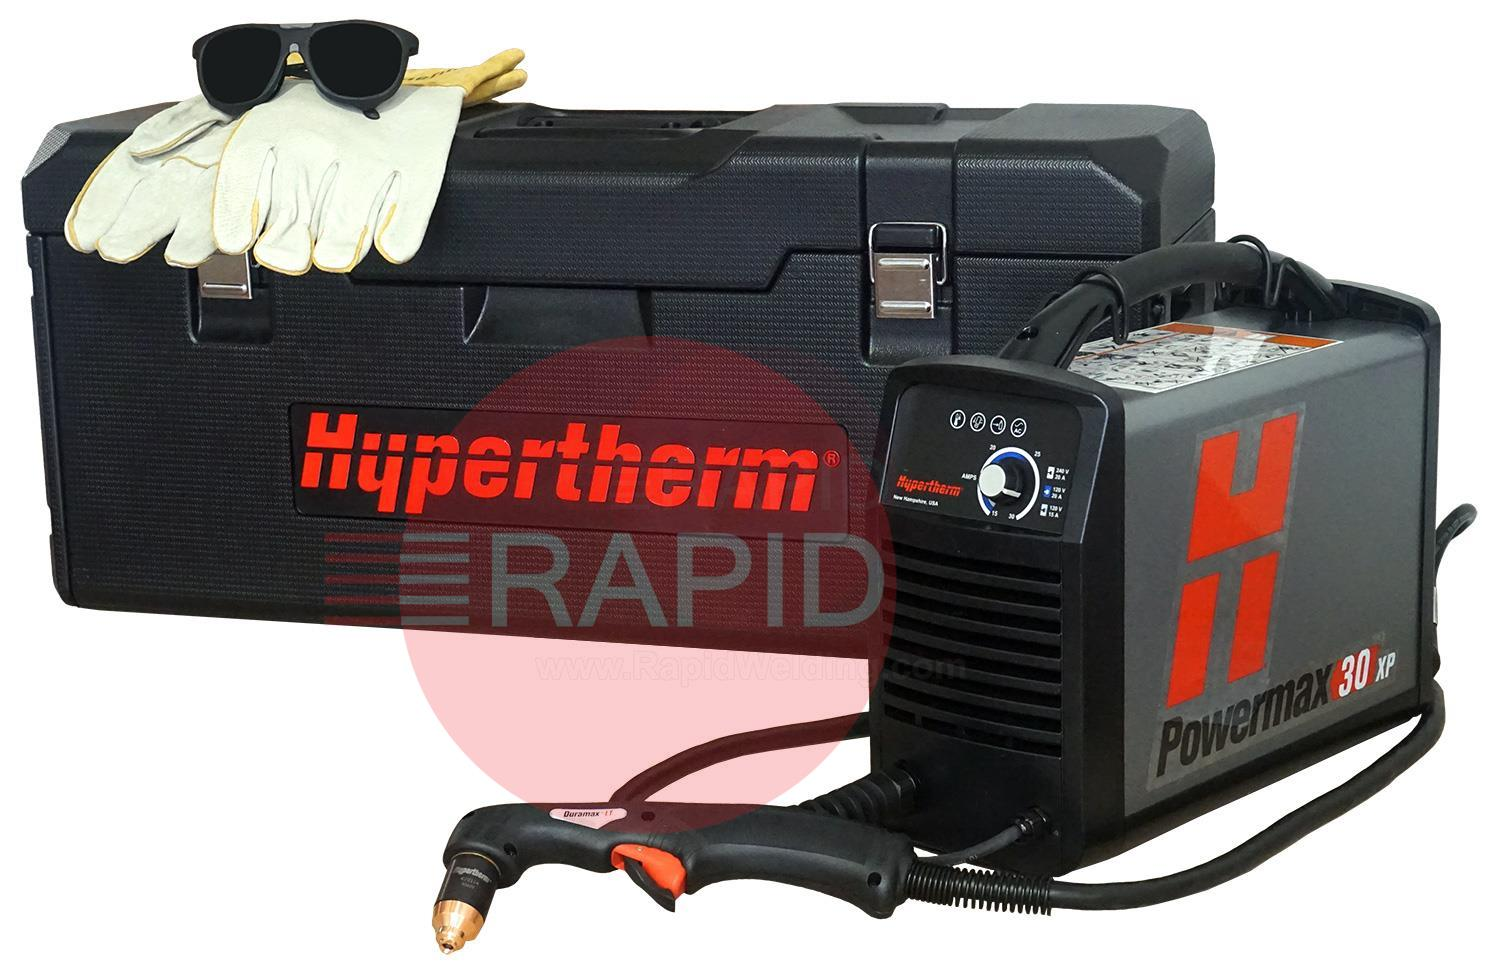 088083  Hypertherm Powermax 30 XP Plasma Cutter with 4.5m Torch and Case, Dual Voltage 110v & 240v CE